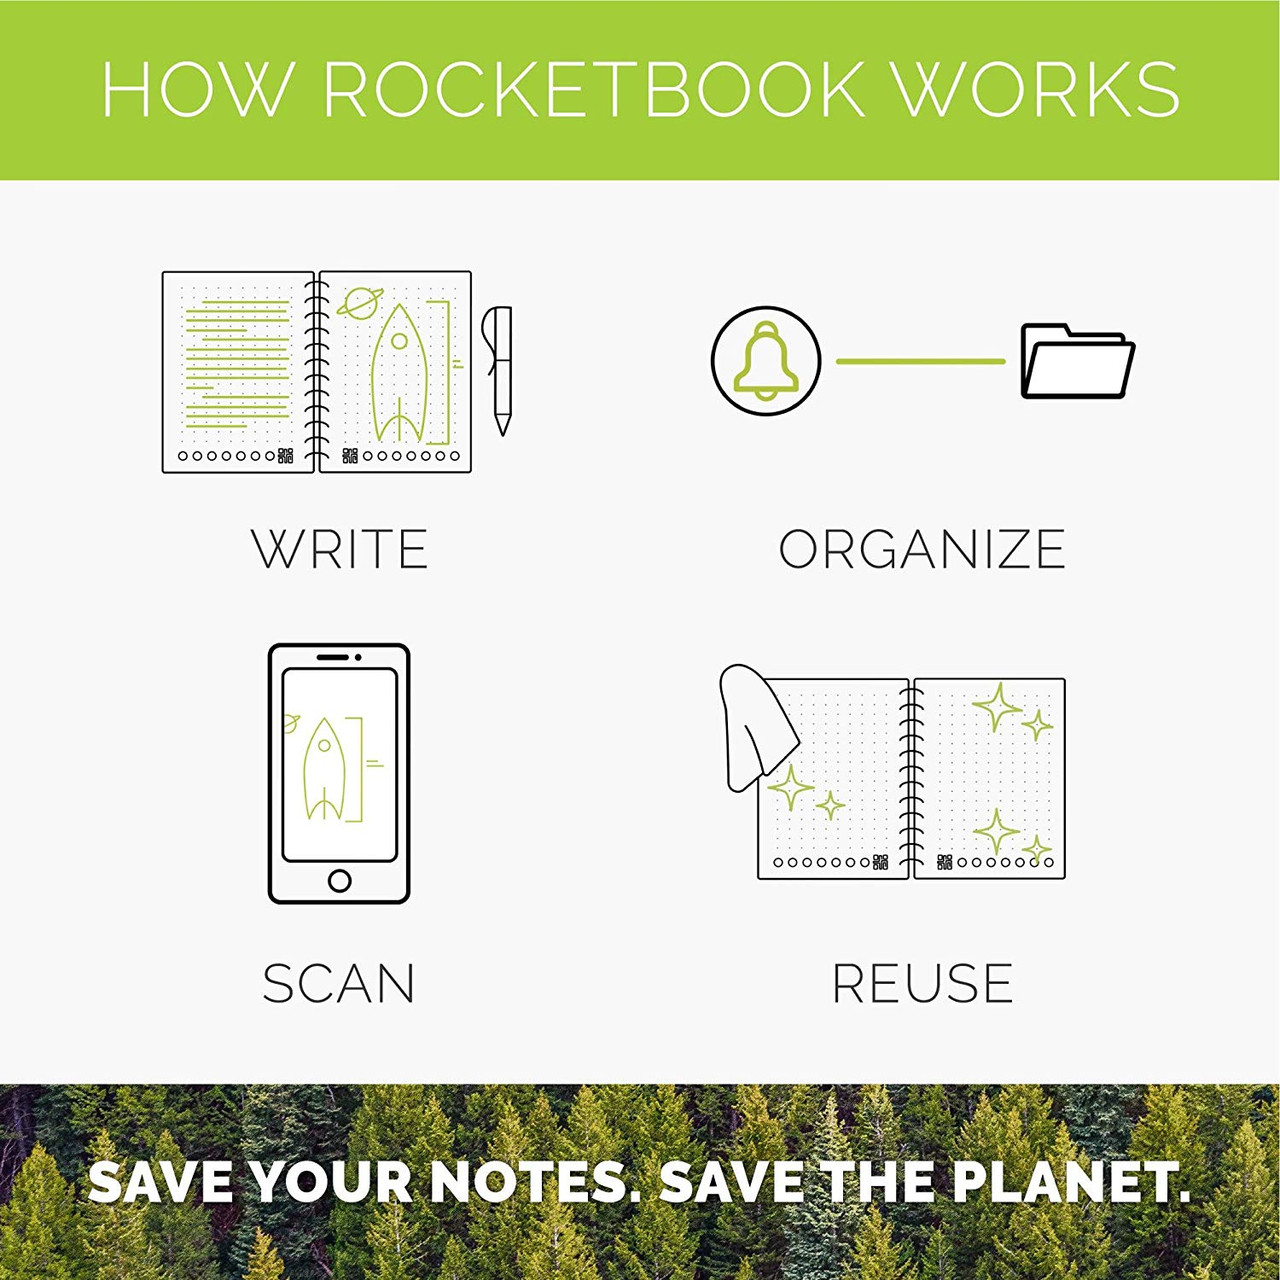 Rocketbook EVR-L-K-CDF Everlast Smart Reusable Notebook with Pen and Microfiber Cloth, Letter Size, Dark Blue